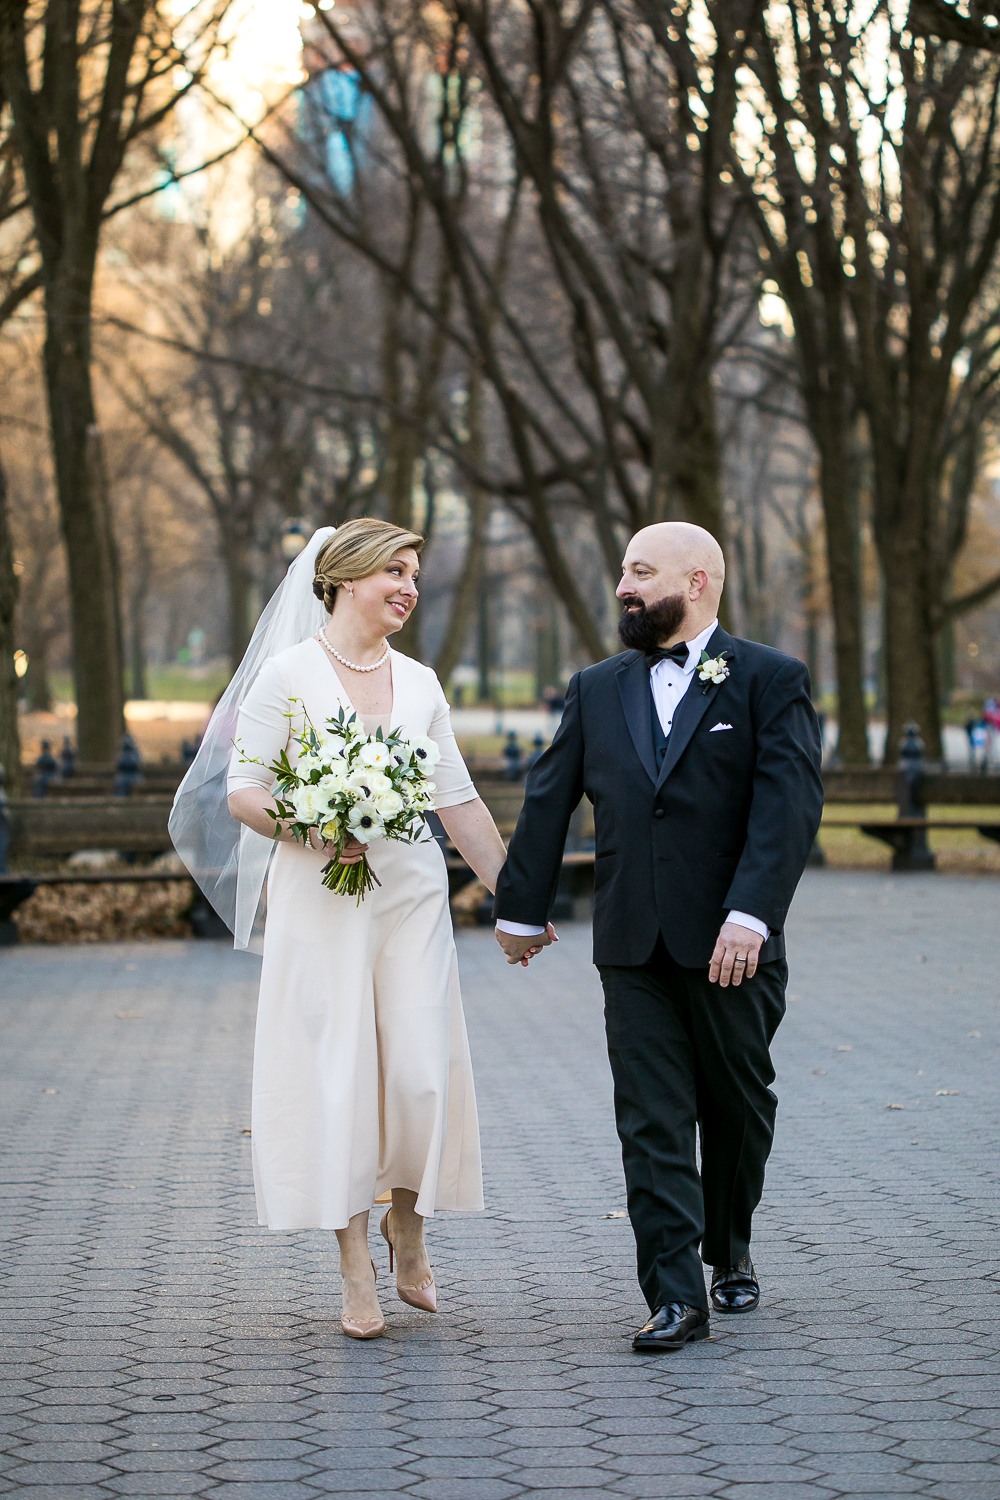 Winter Wedding in Central Park